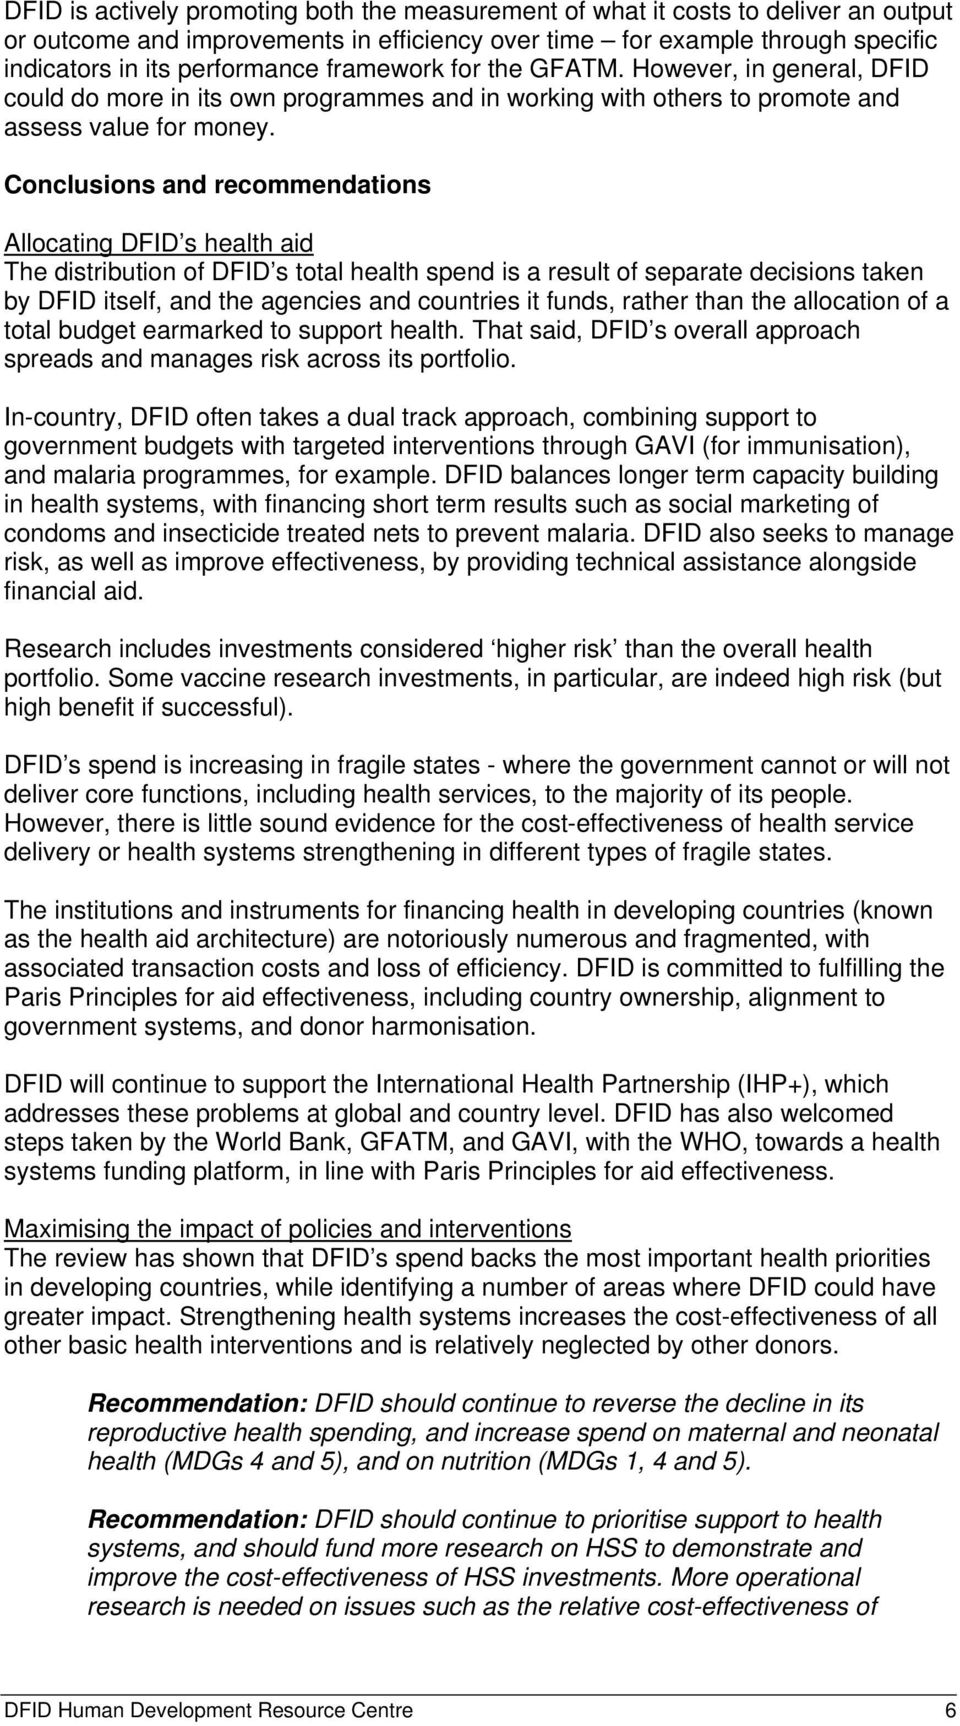 Conclusions and recommendations Allocating DFID s health aid The distribution of DFID s total health spend is a result of separate decisions taken by DFID itself, and the agencies and countries it